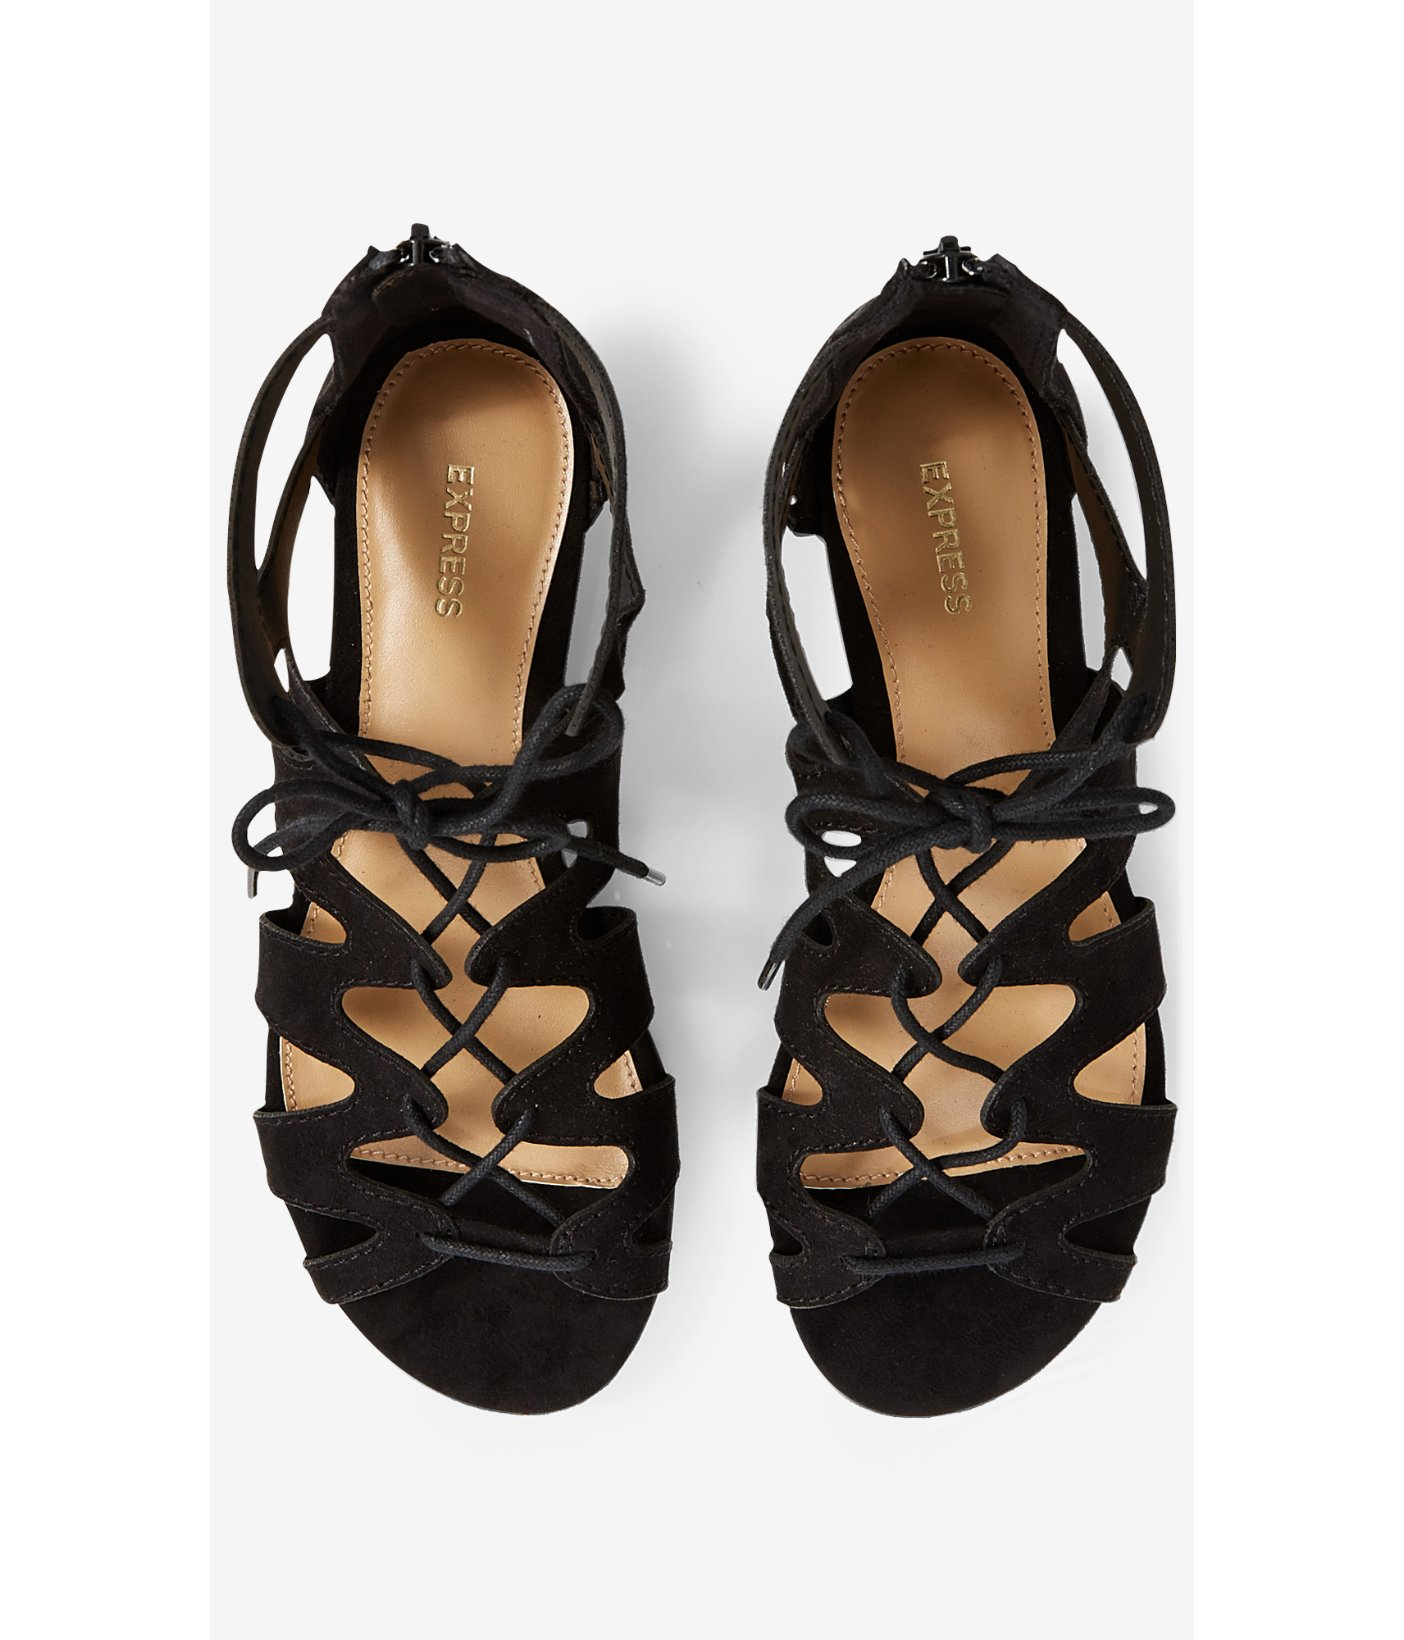 831b893666a Lyst - Express Lace-up Sandal in Black